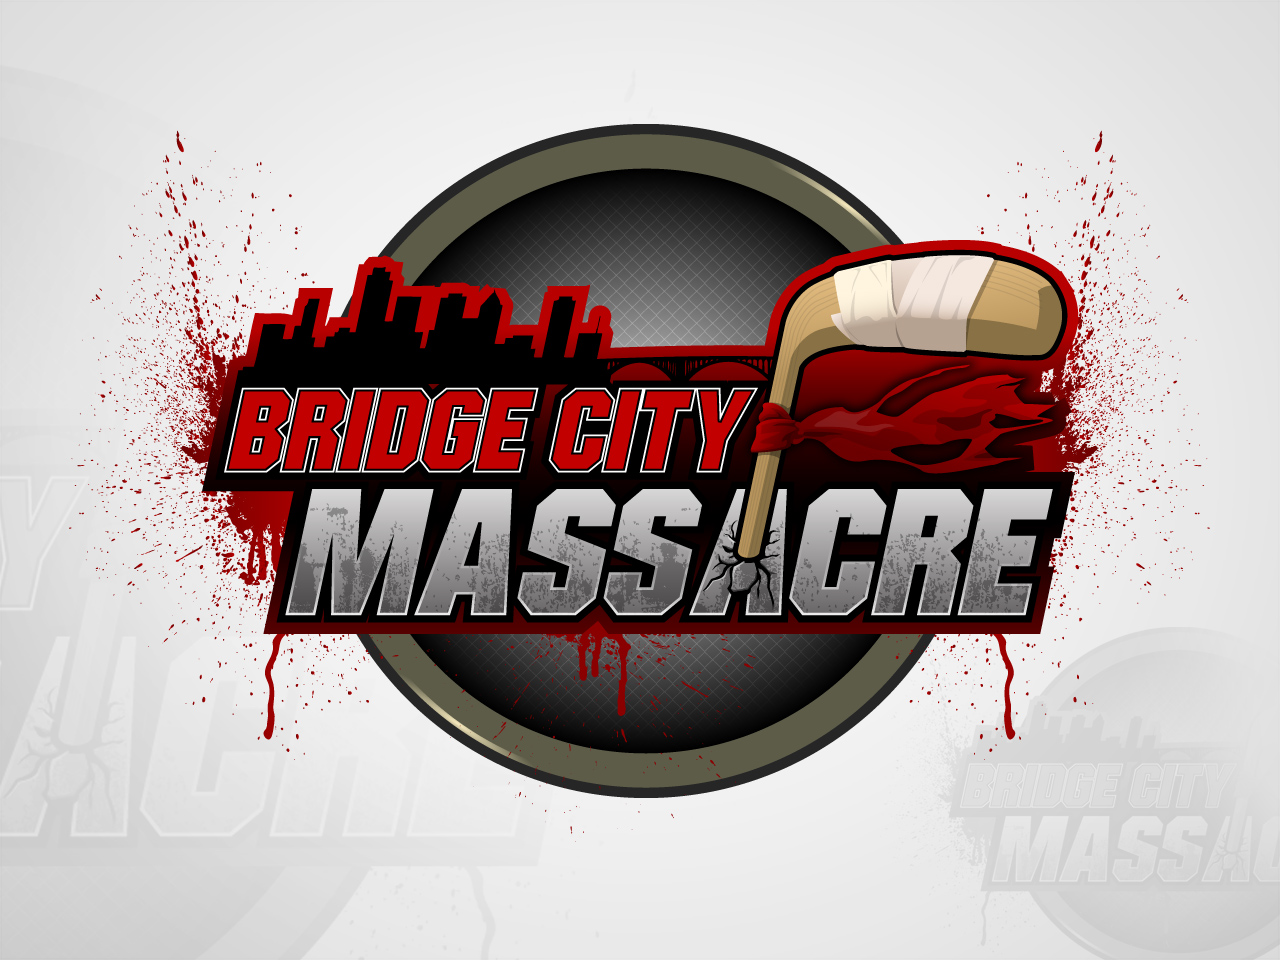 Logo Design by jpbituin - Entry No. 44 in the Logo Design Contest New Logo Design for Bridge City Massacre.